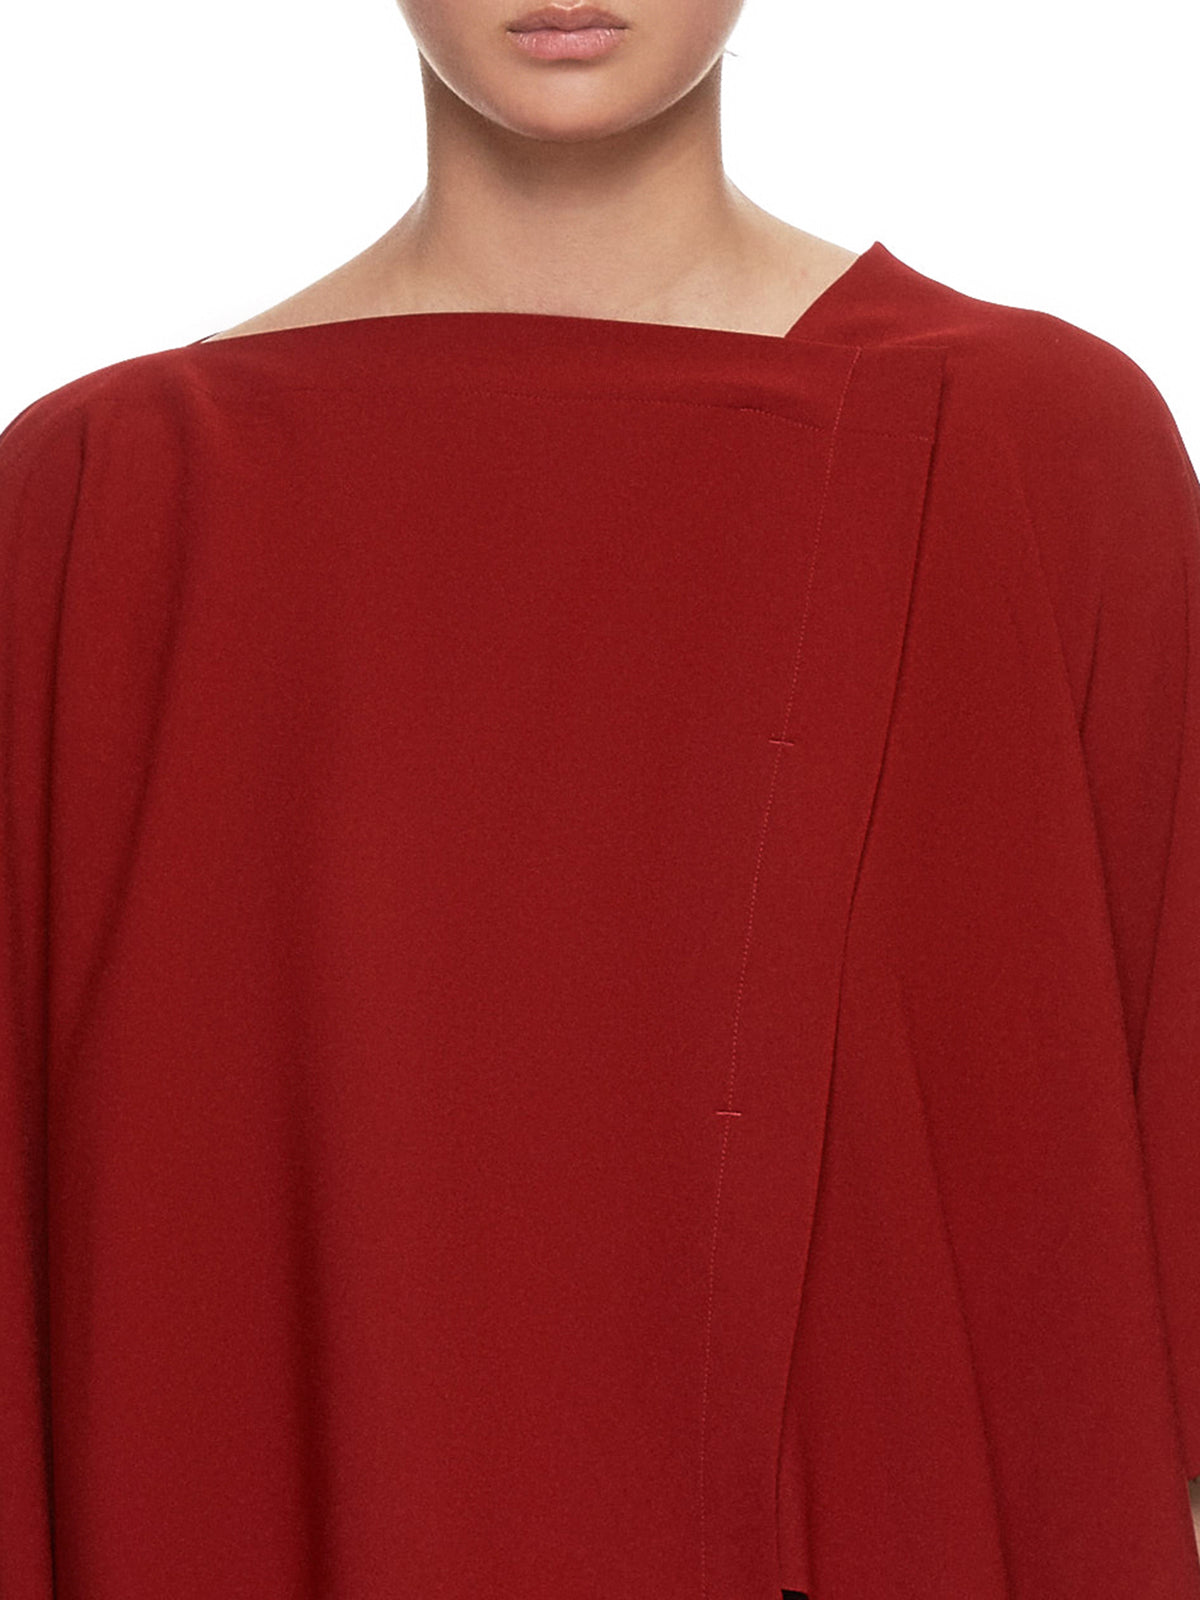 Satin Back Drape Top (IL96FJ335-RED)